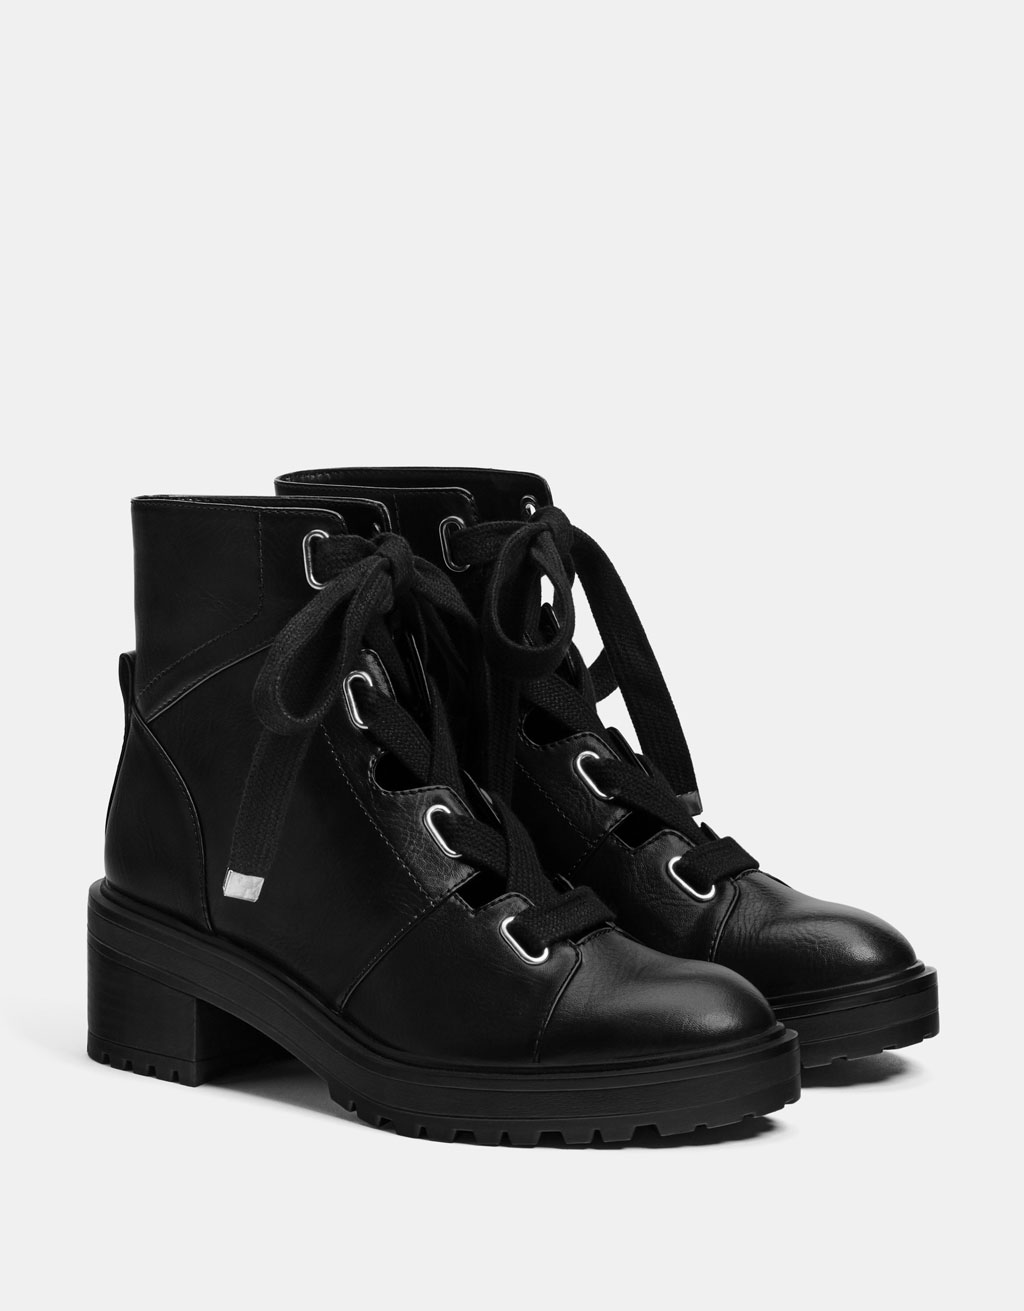 Openwork ankle boots with metal eyelets